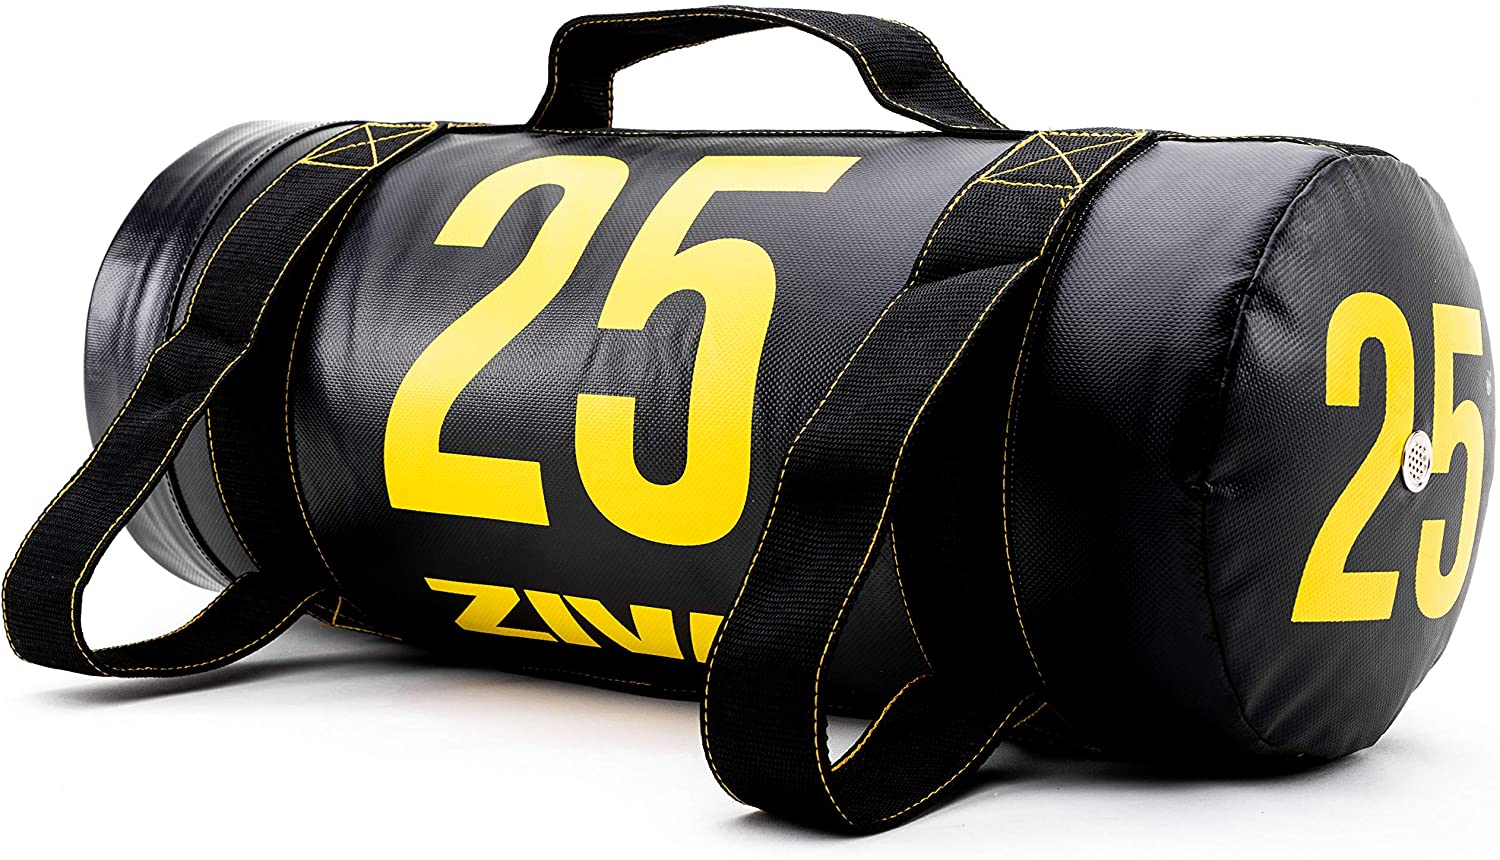 ZIVA Portable Power Core Bag - Pre-Weighted Heavy Duty Commercial Grade PVC Exercise Sandbags with Non-Slip Handles - Multiple Sizes - Perfect for Home Gym Weight Training Crossfit Workouts